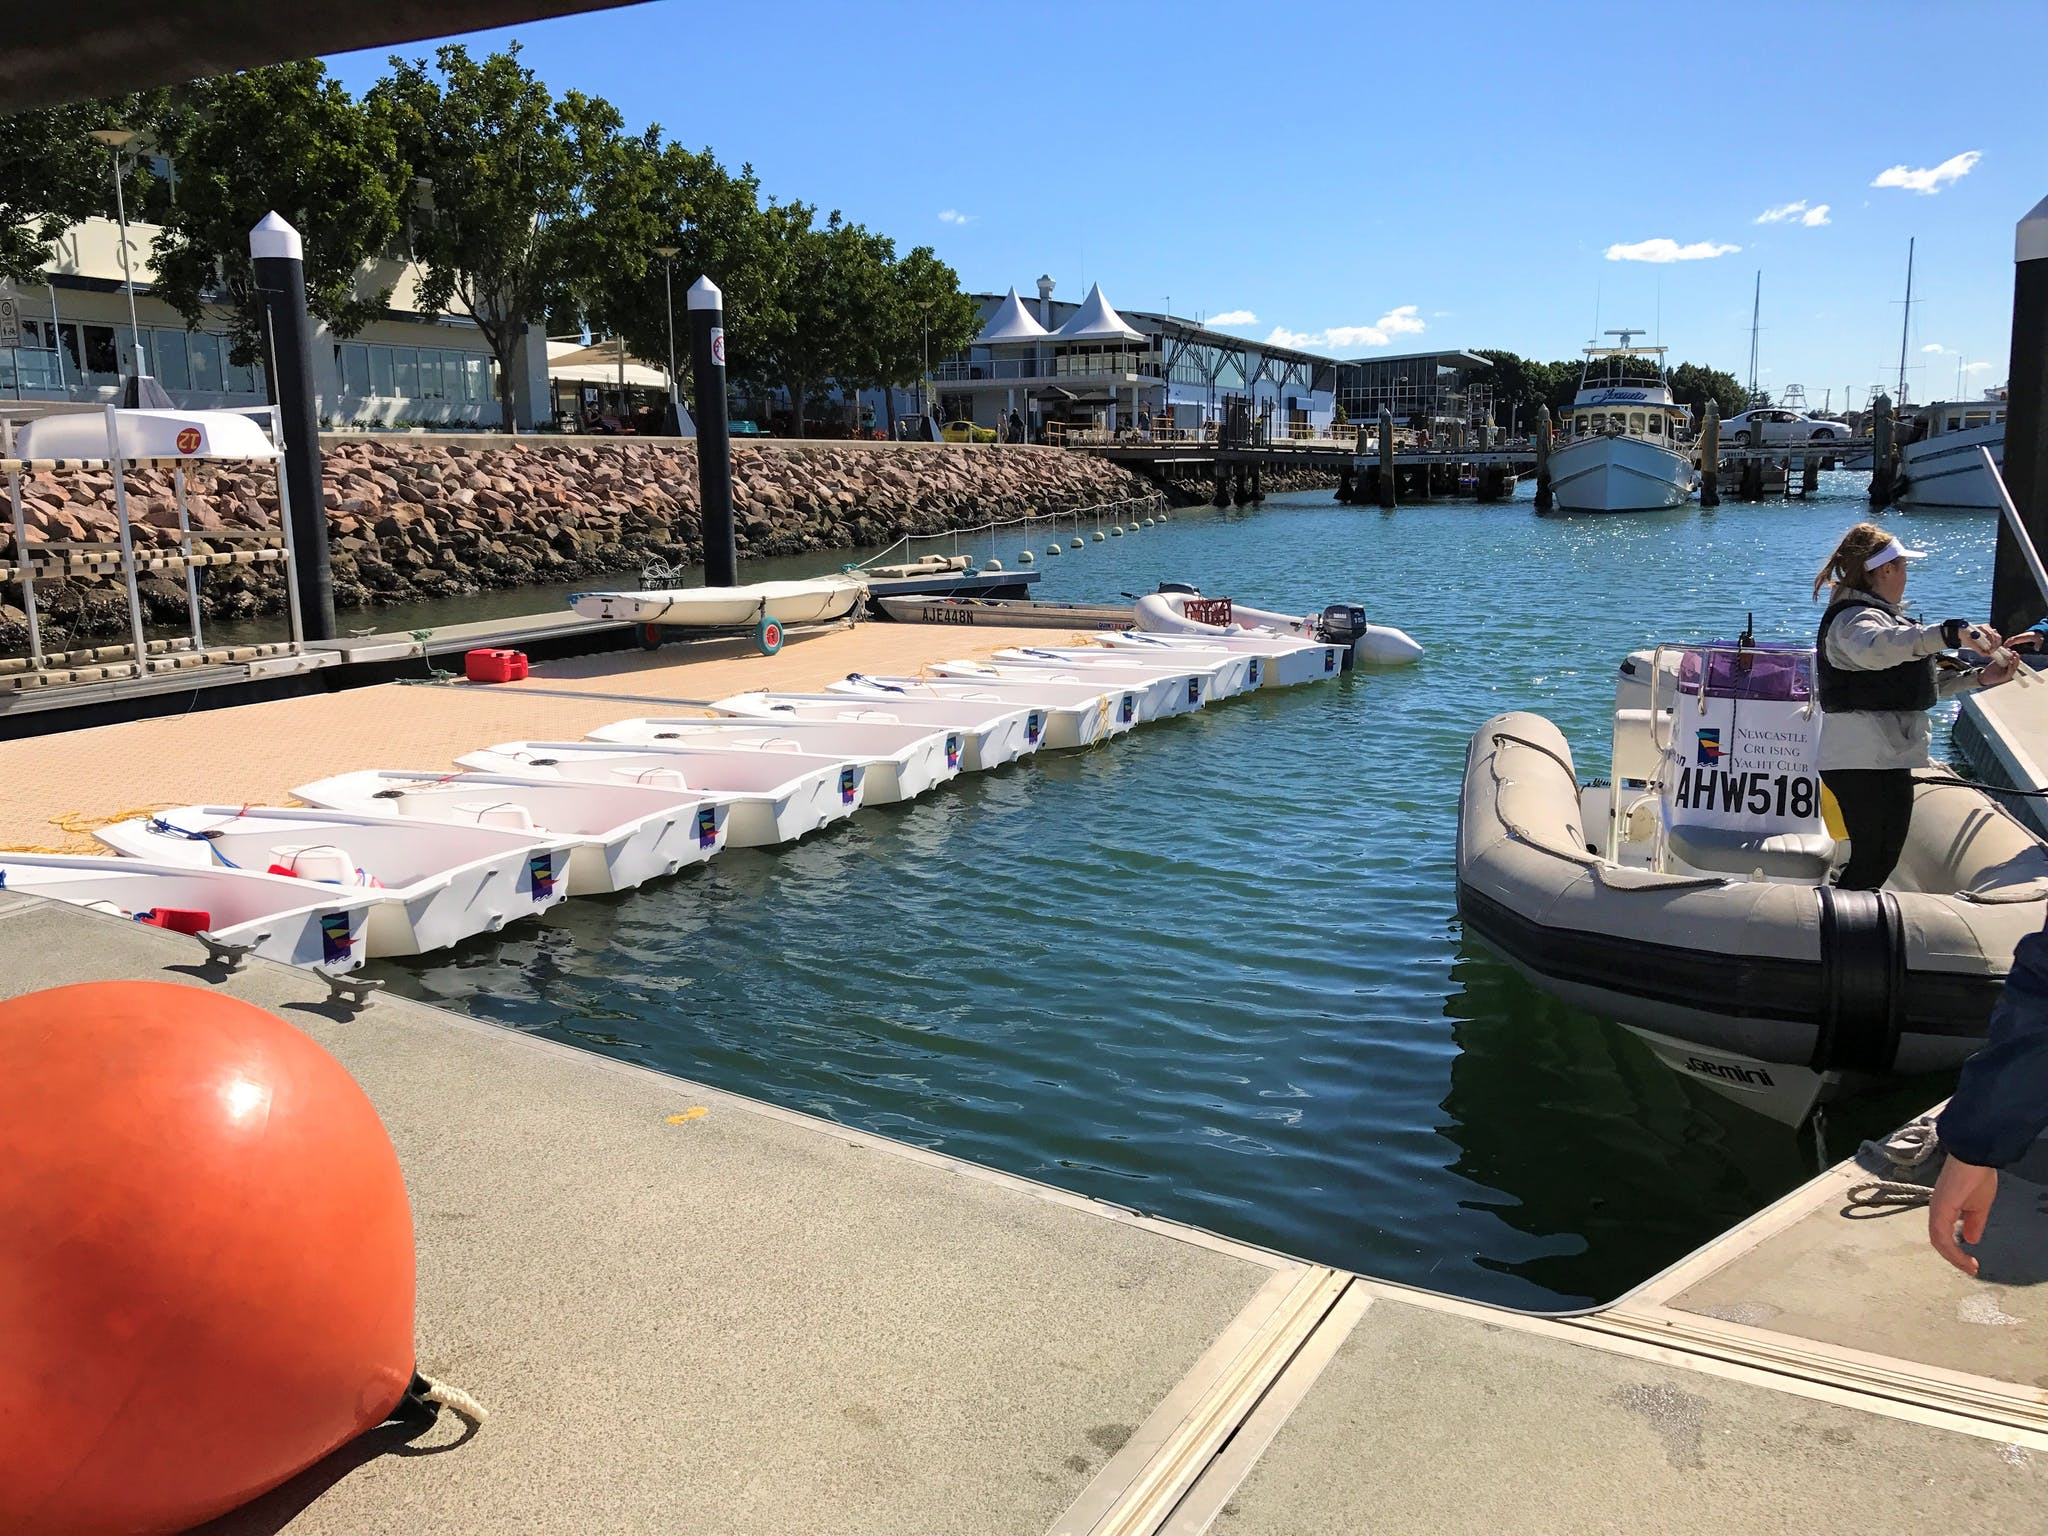 Dinghies all ready awaiting the kids!